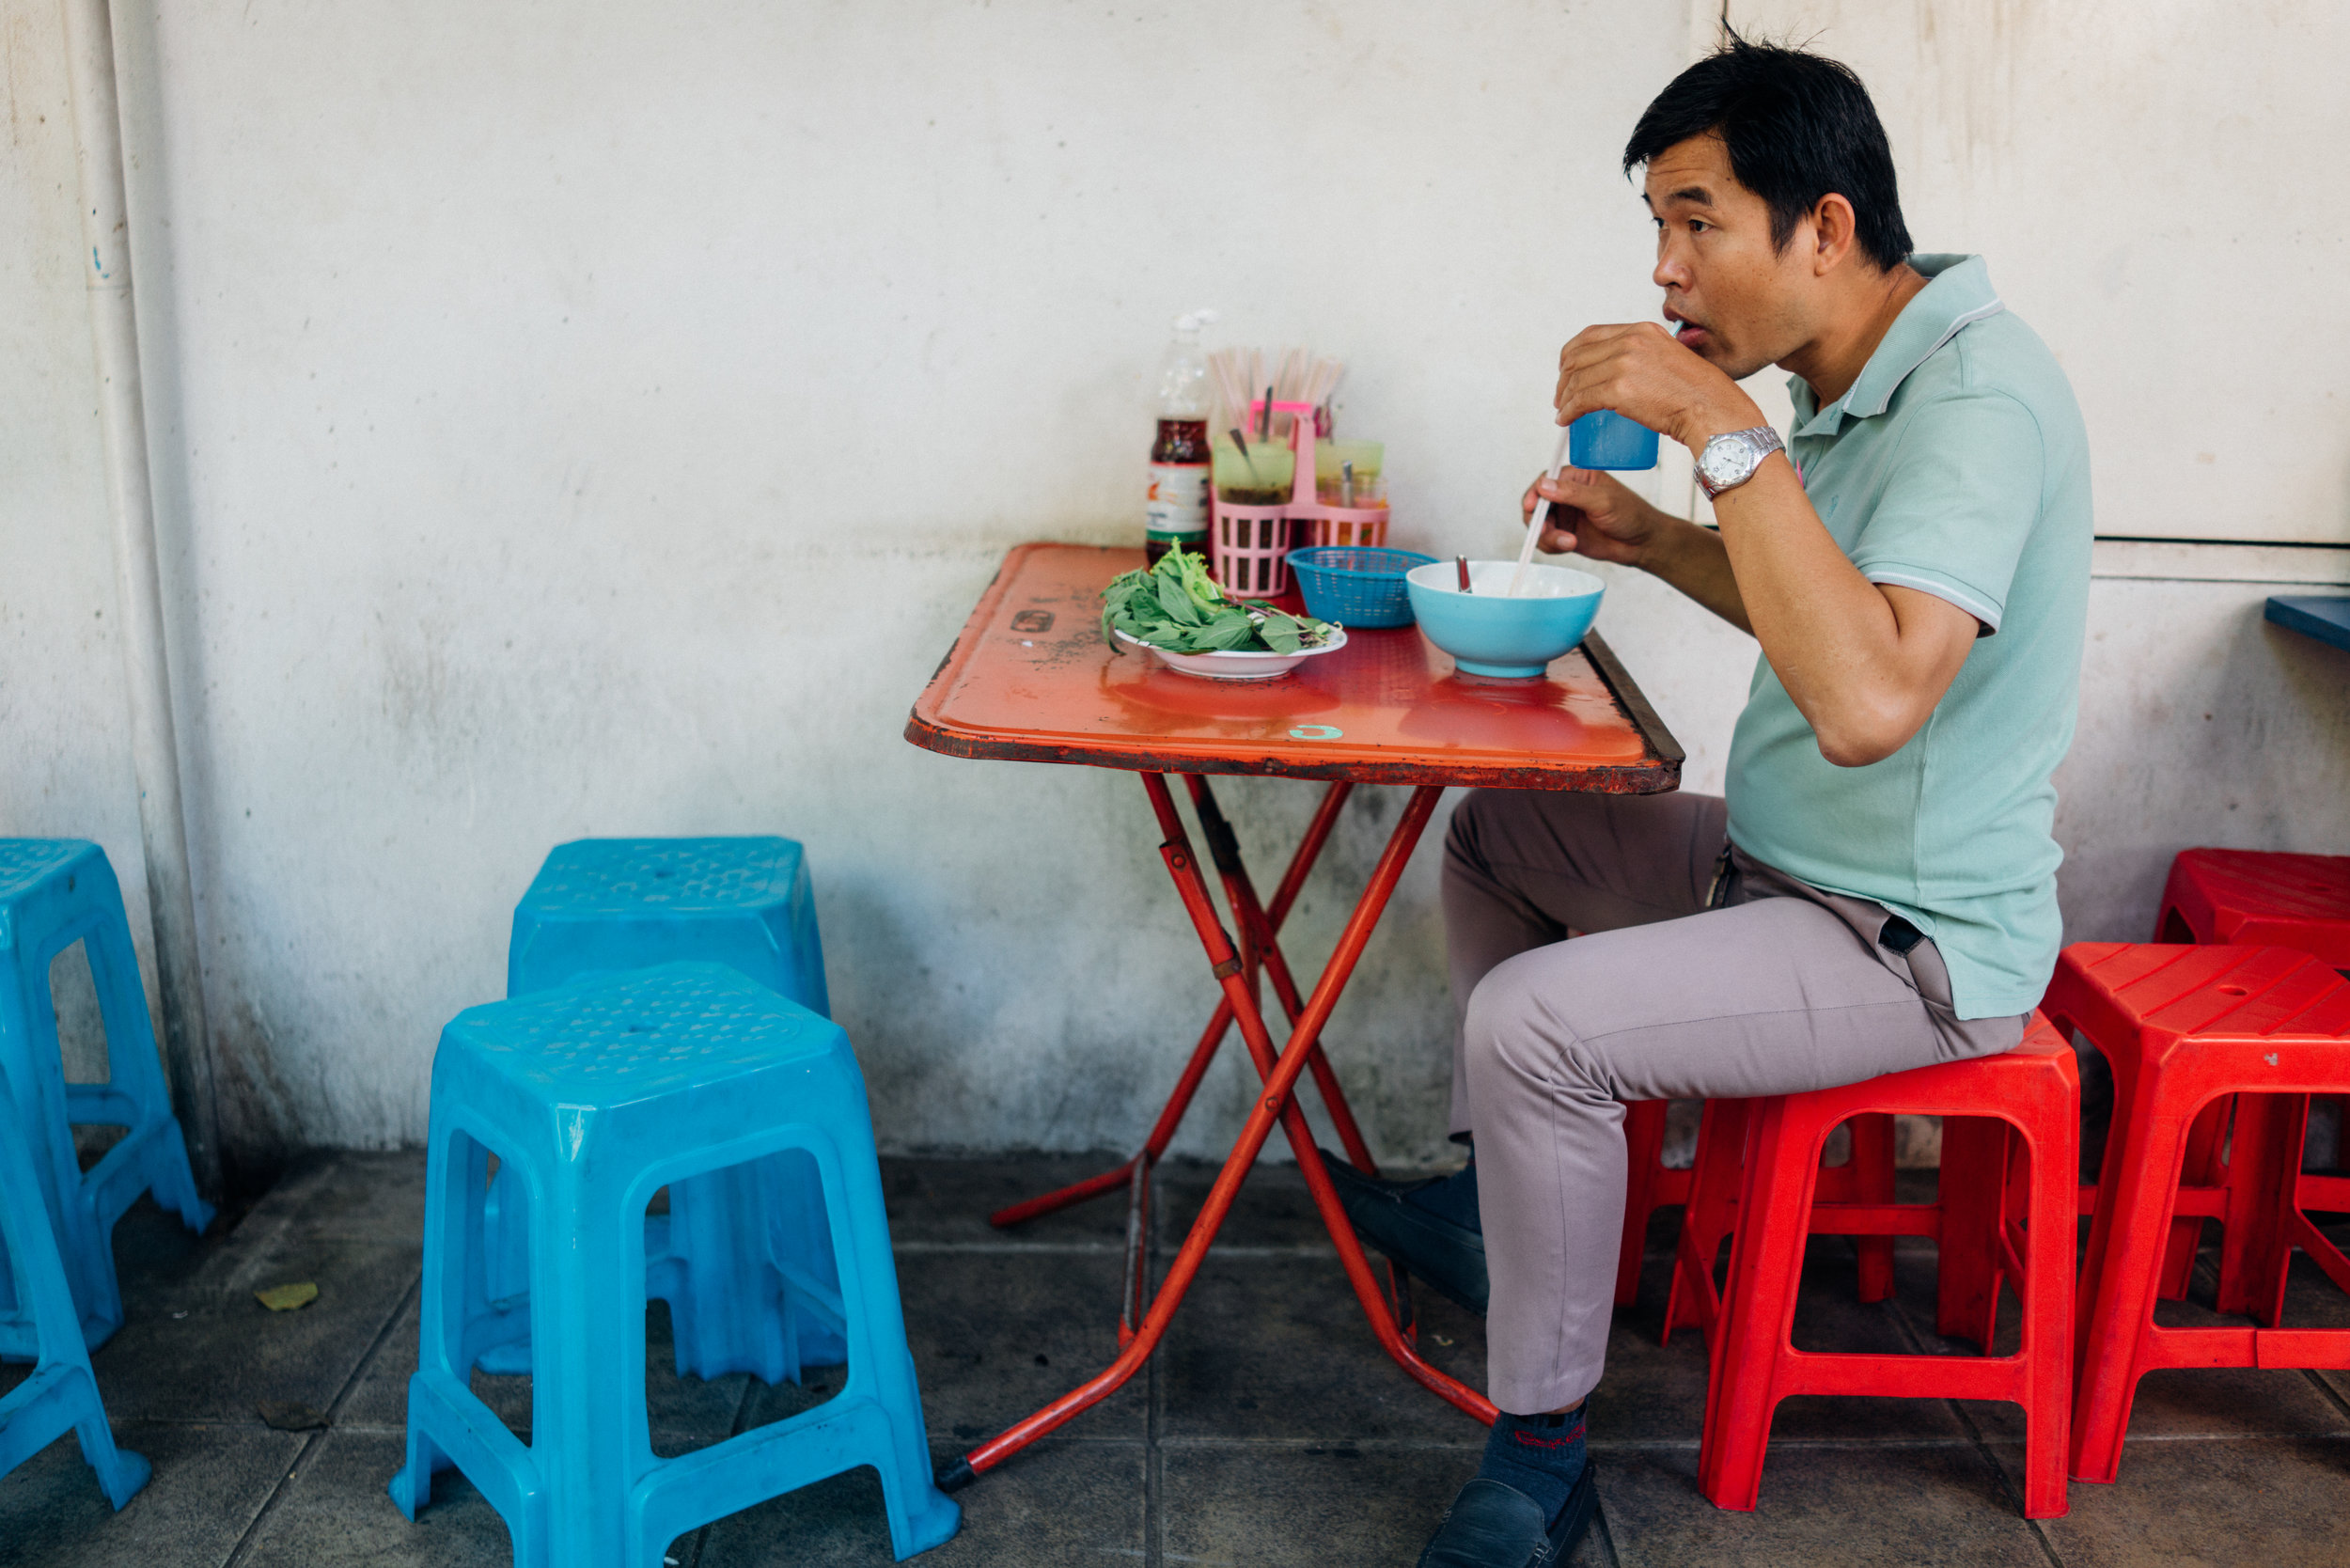 Colorful plastic stools equate to street food